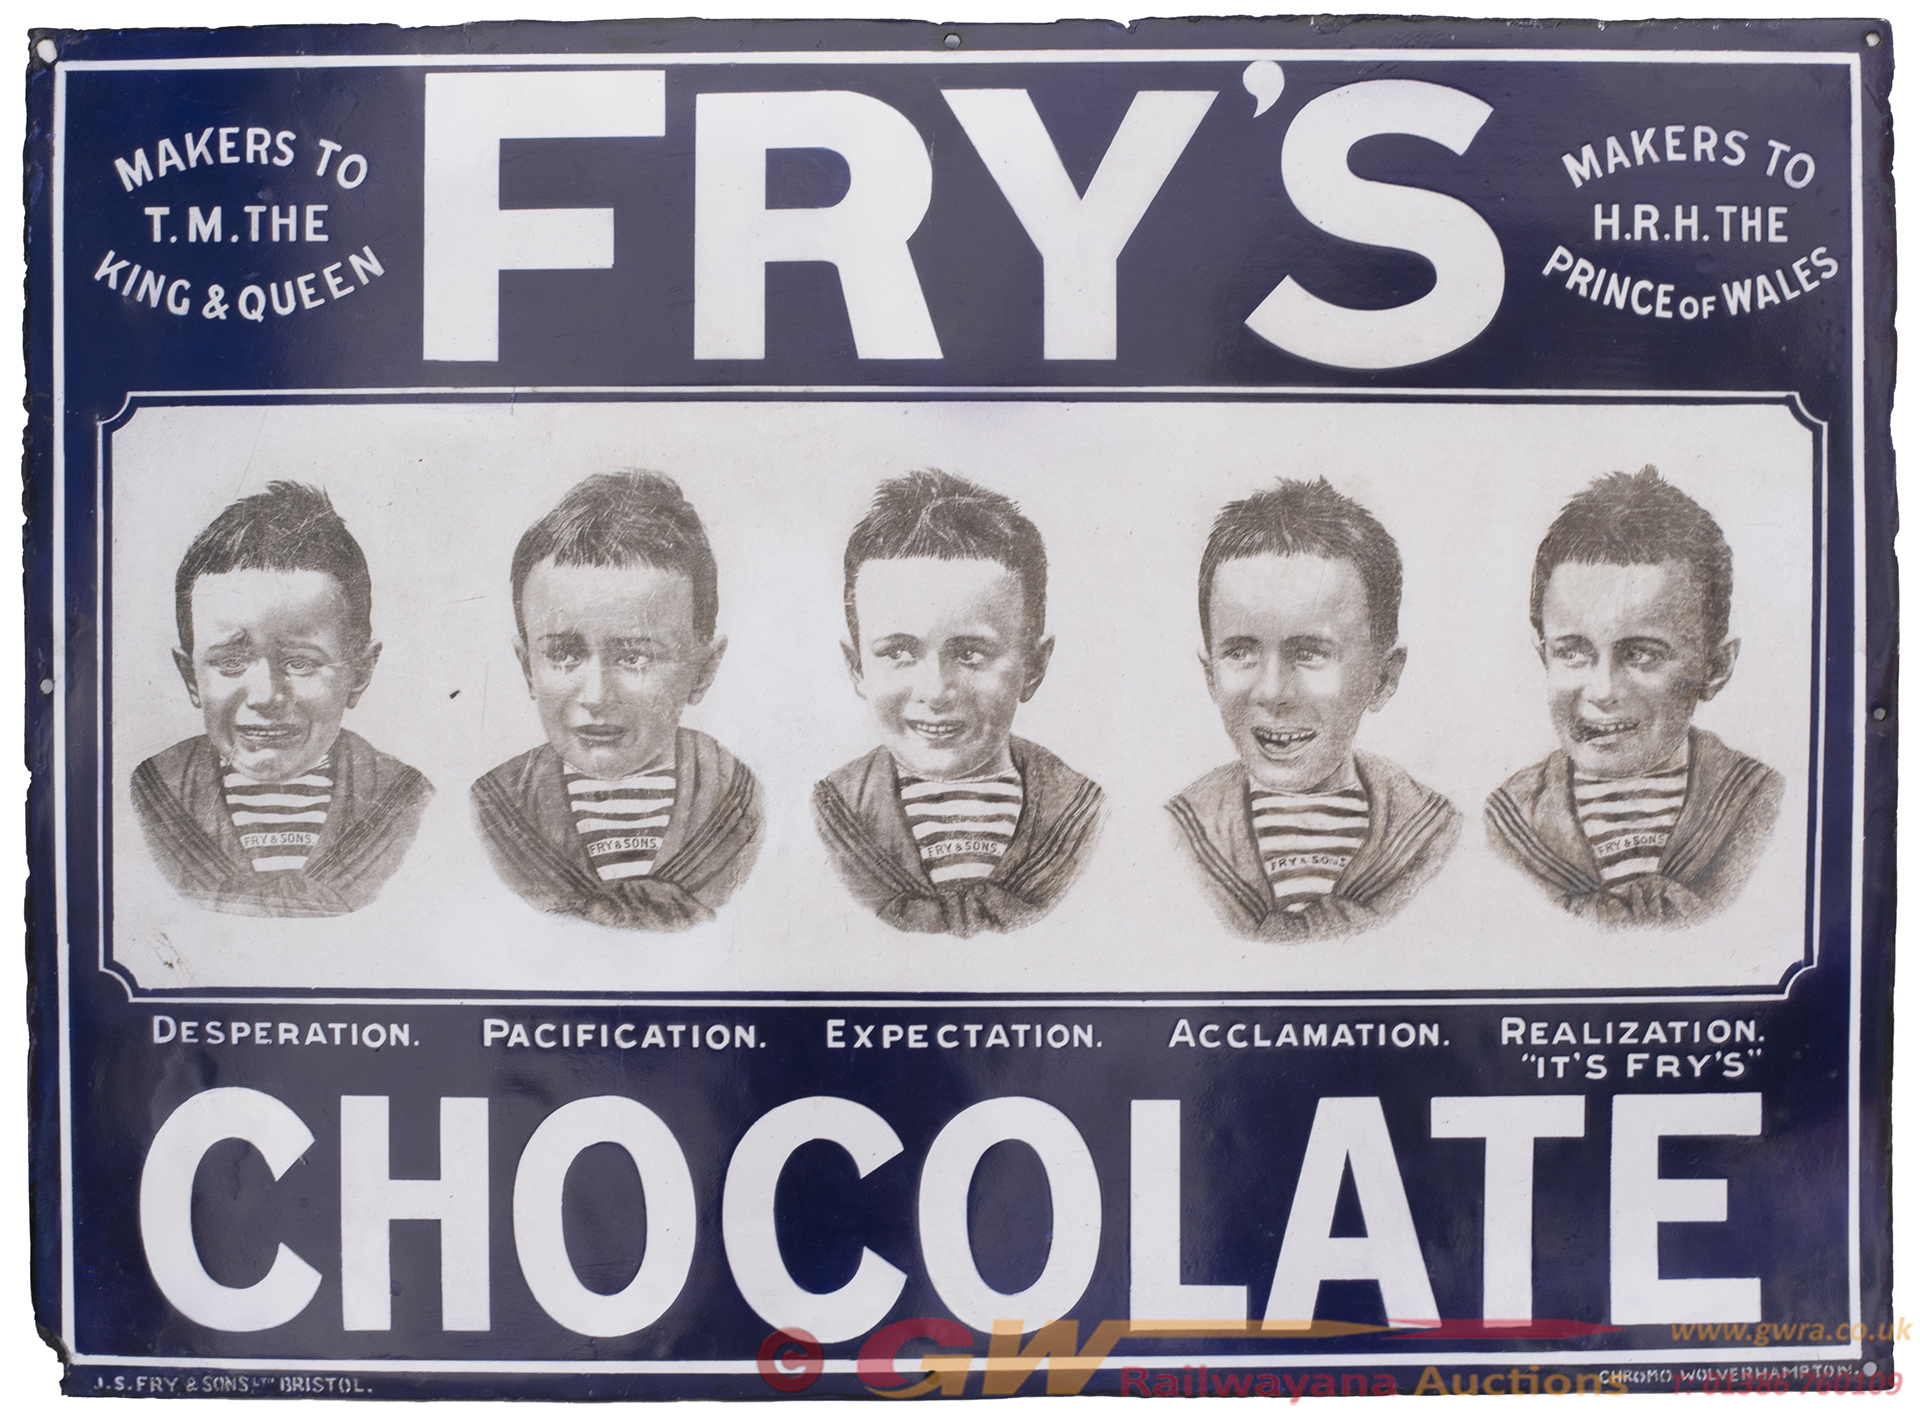 Advertising Enamel Sign FRY'S CHOCOLATE MAKERS TO